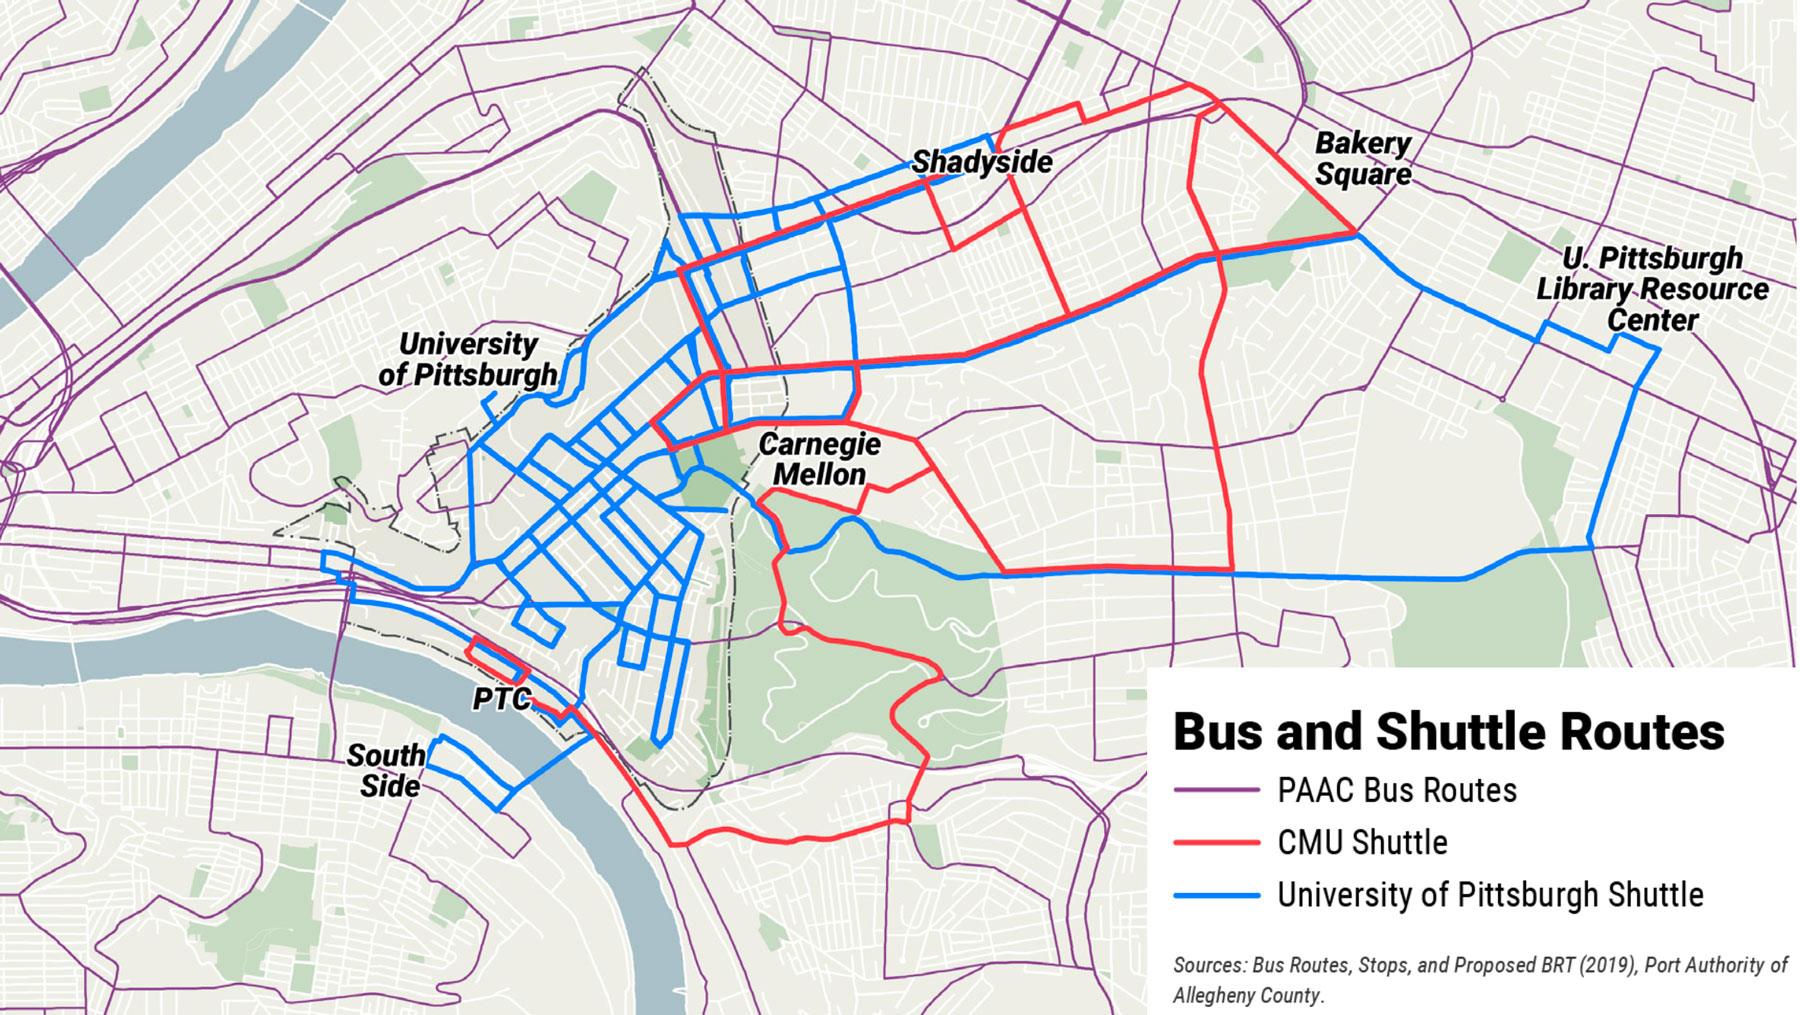 Map showing Port Authority bus routes as well as University of Pittsburgh and CMU shuttle routes.